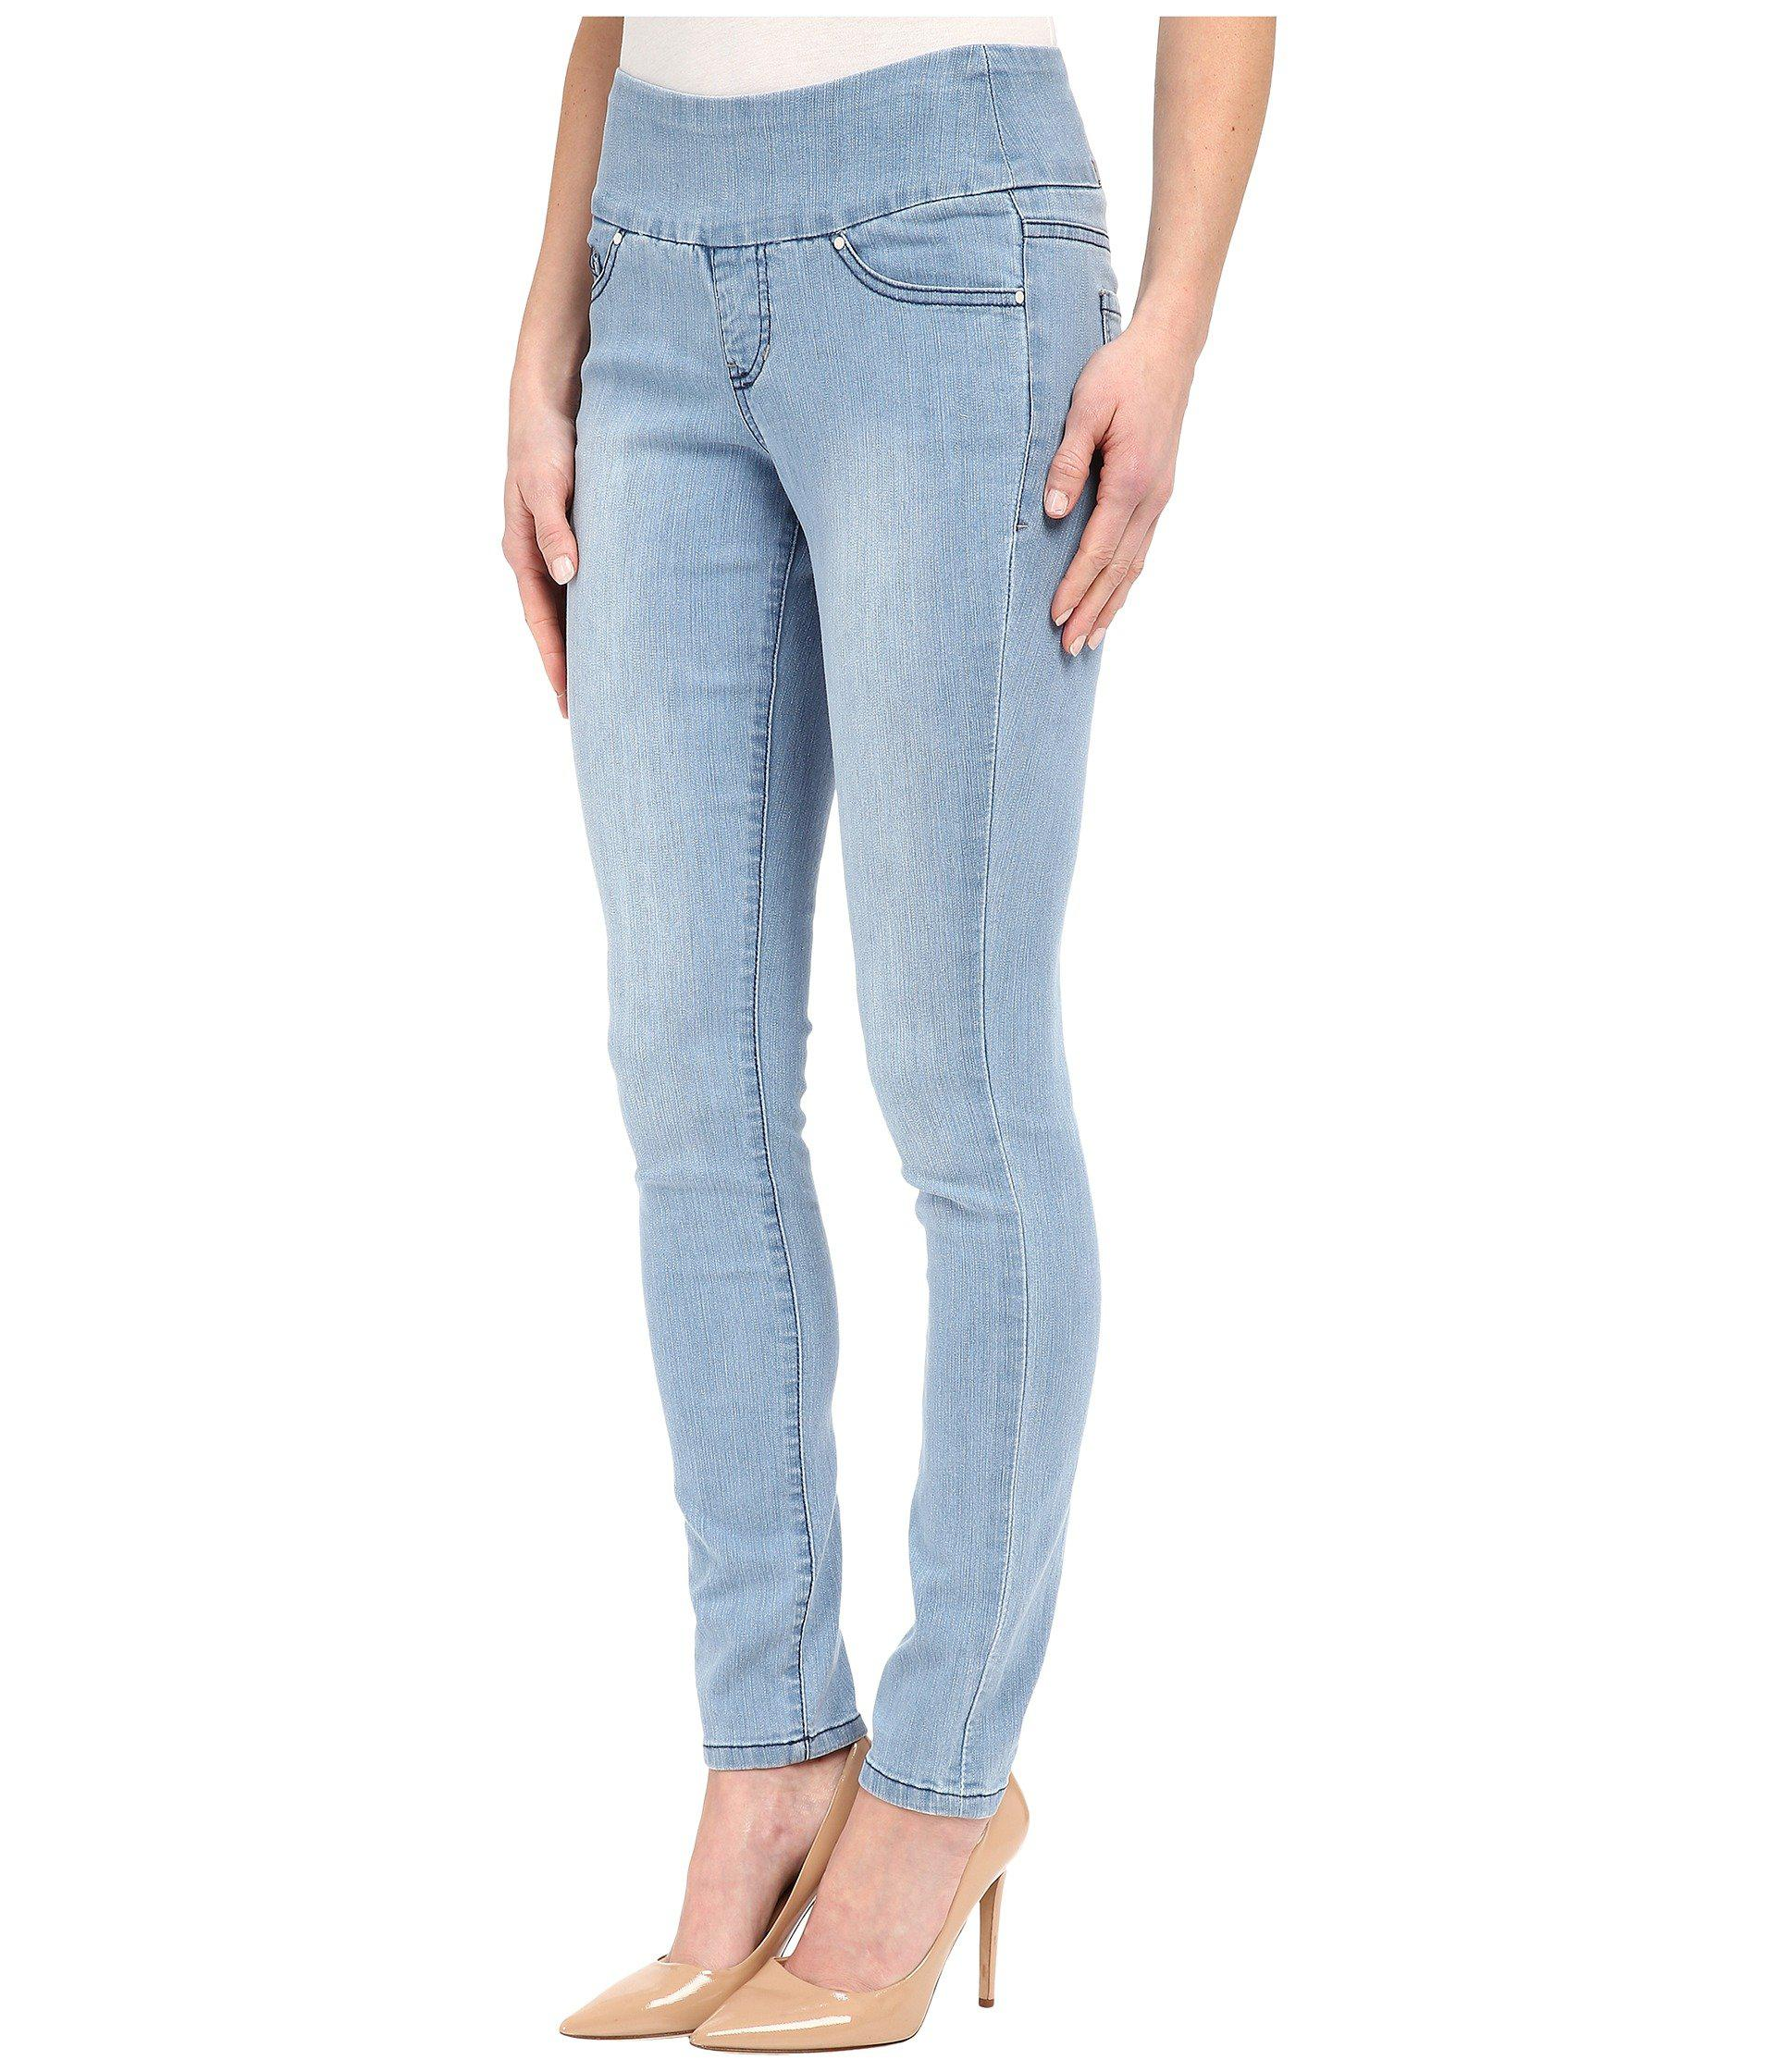 straight with voyage and jeans fit a comforter pin legs made high comfort of have waist